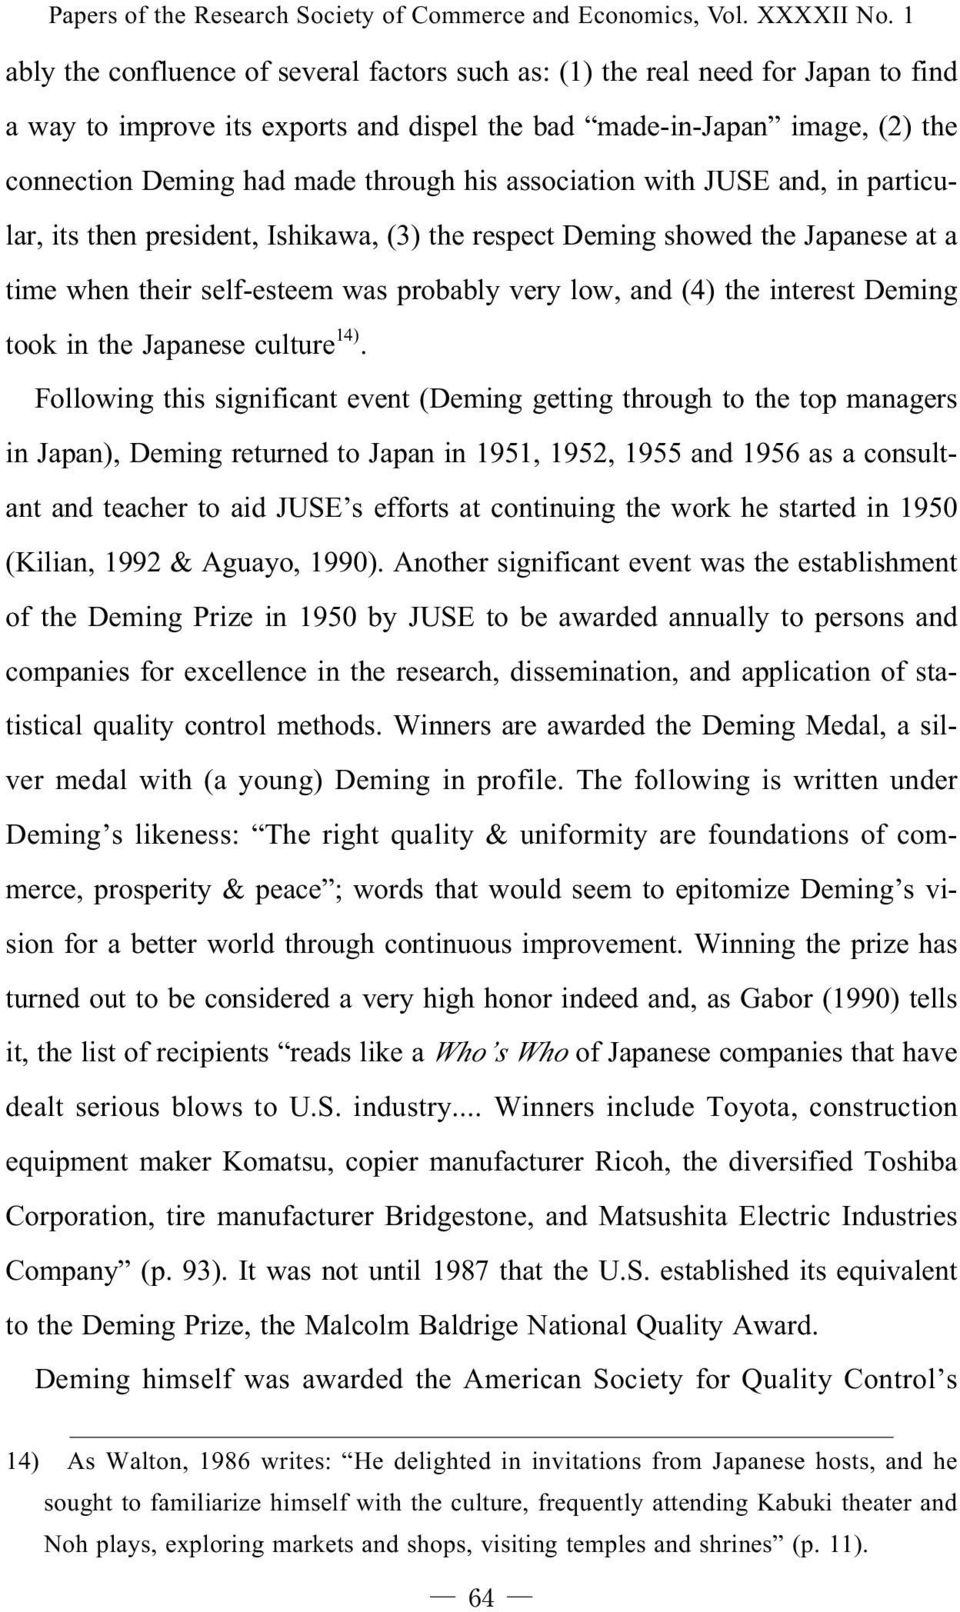 his association with JUSE and, in particular, its then president, Ishikawa, (3) the respect Deming showed the Japanese at a time when their self-esteem was probably very low, and (4) the interest